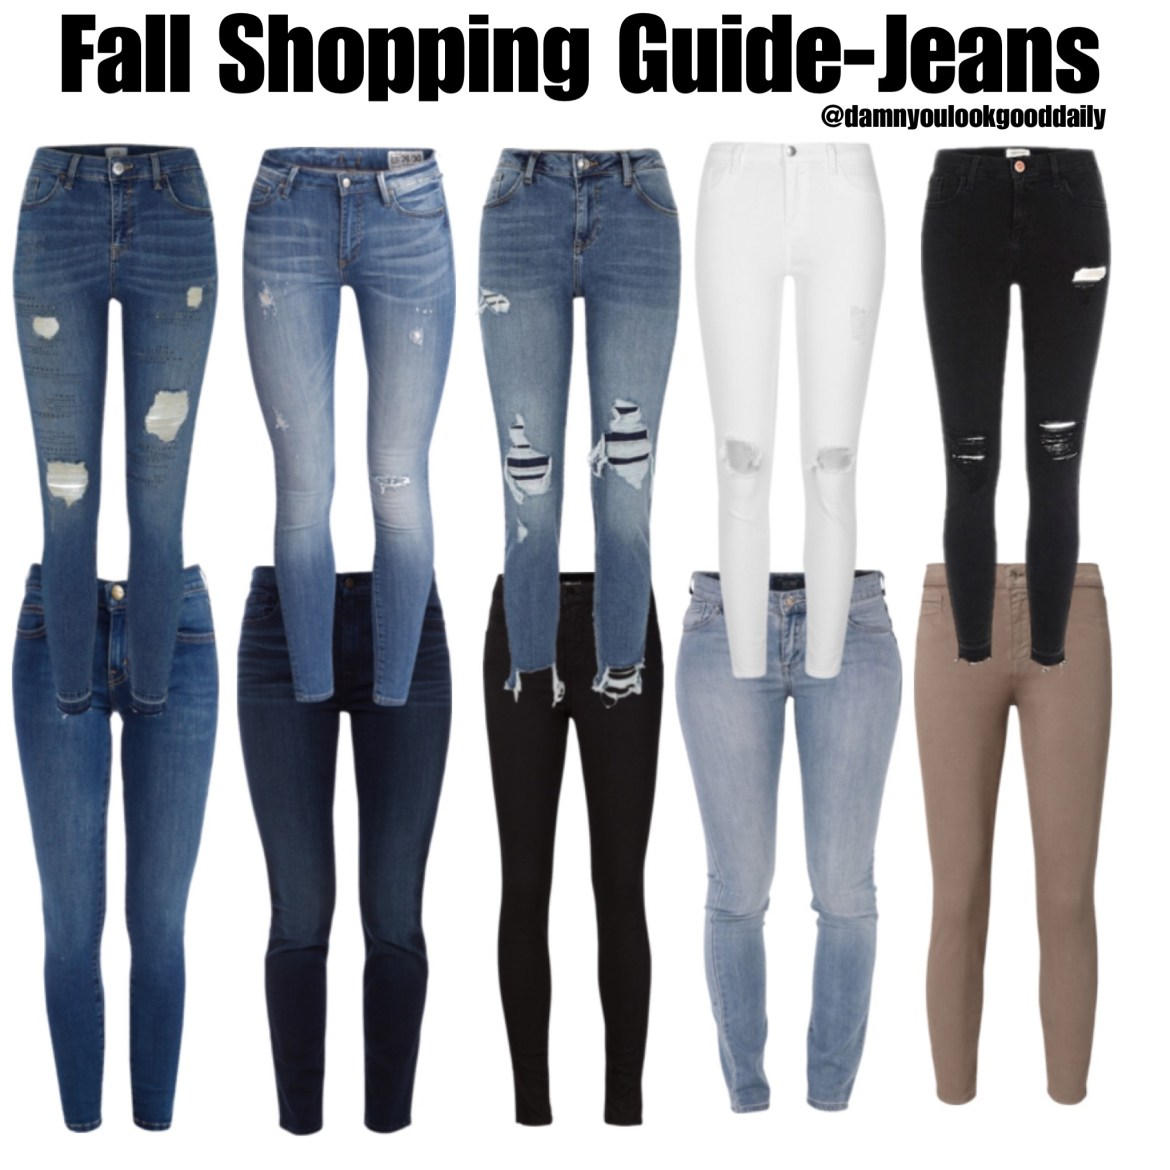 Jeans for fall shopping